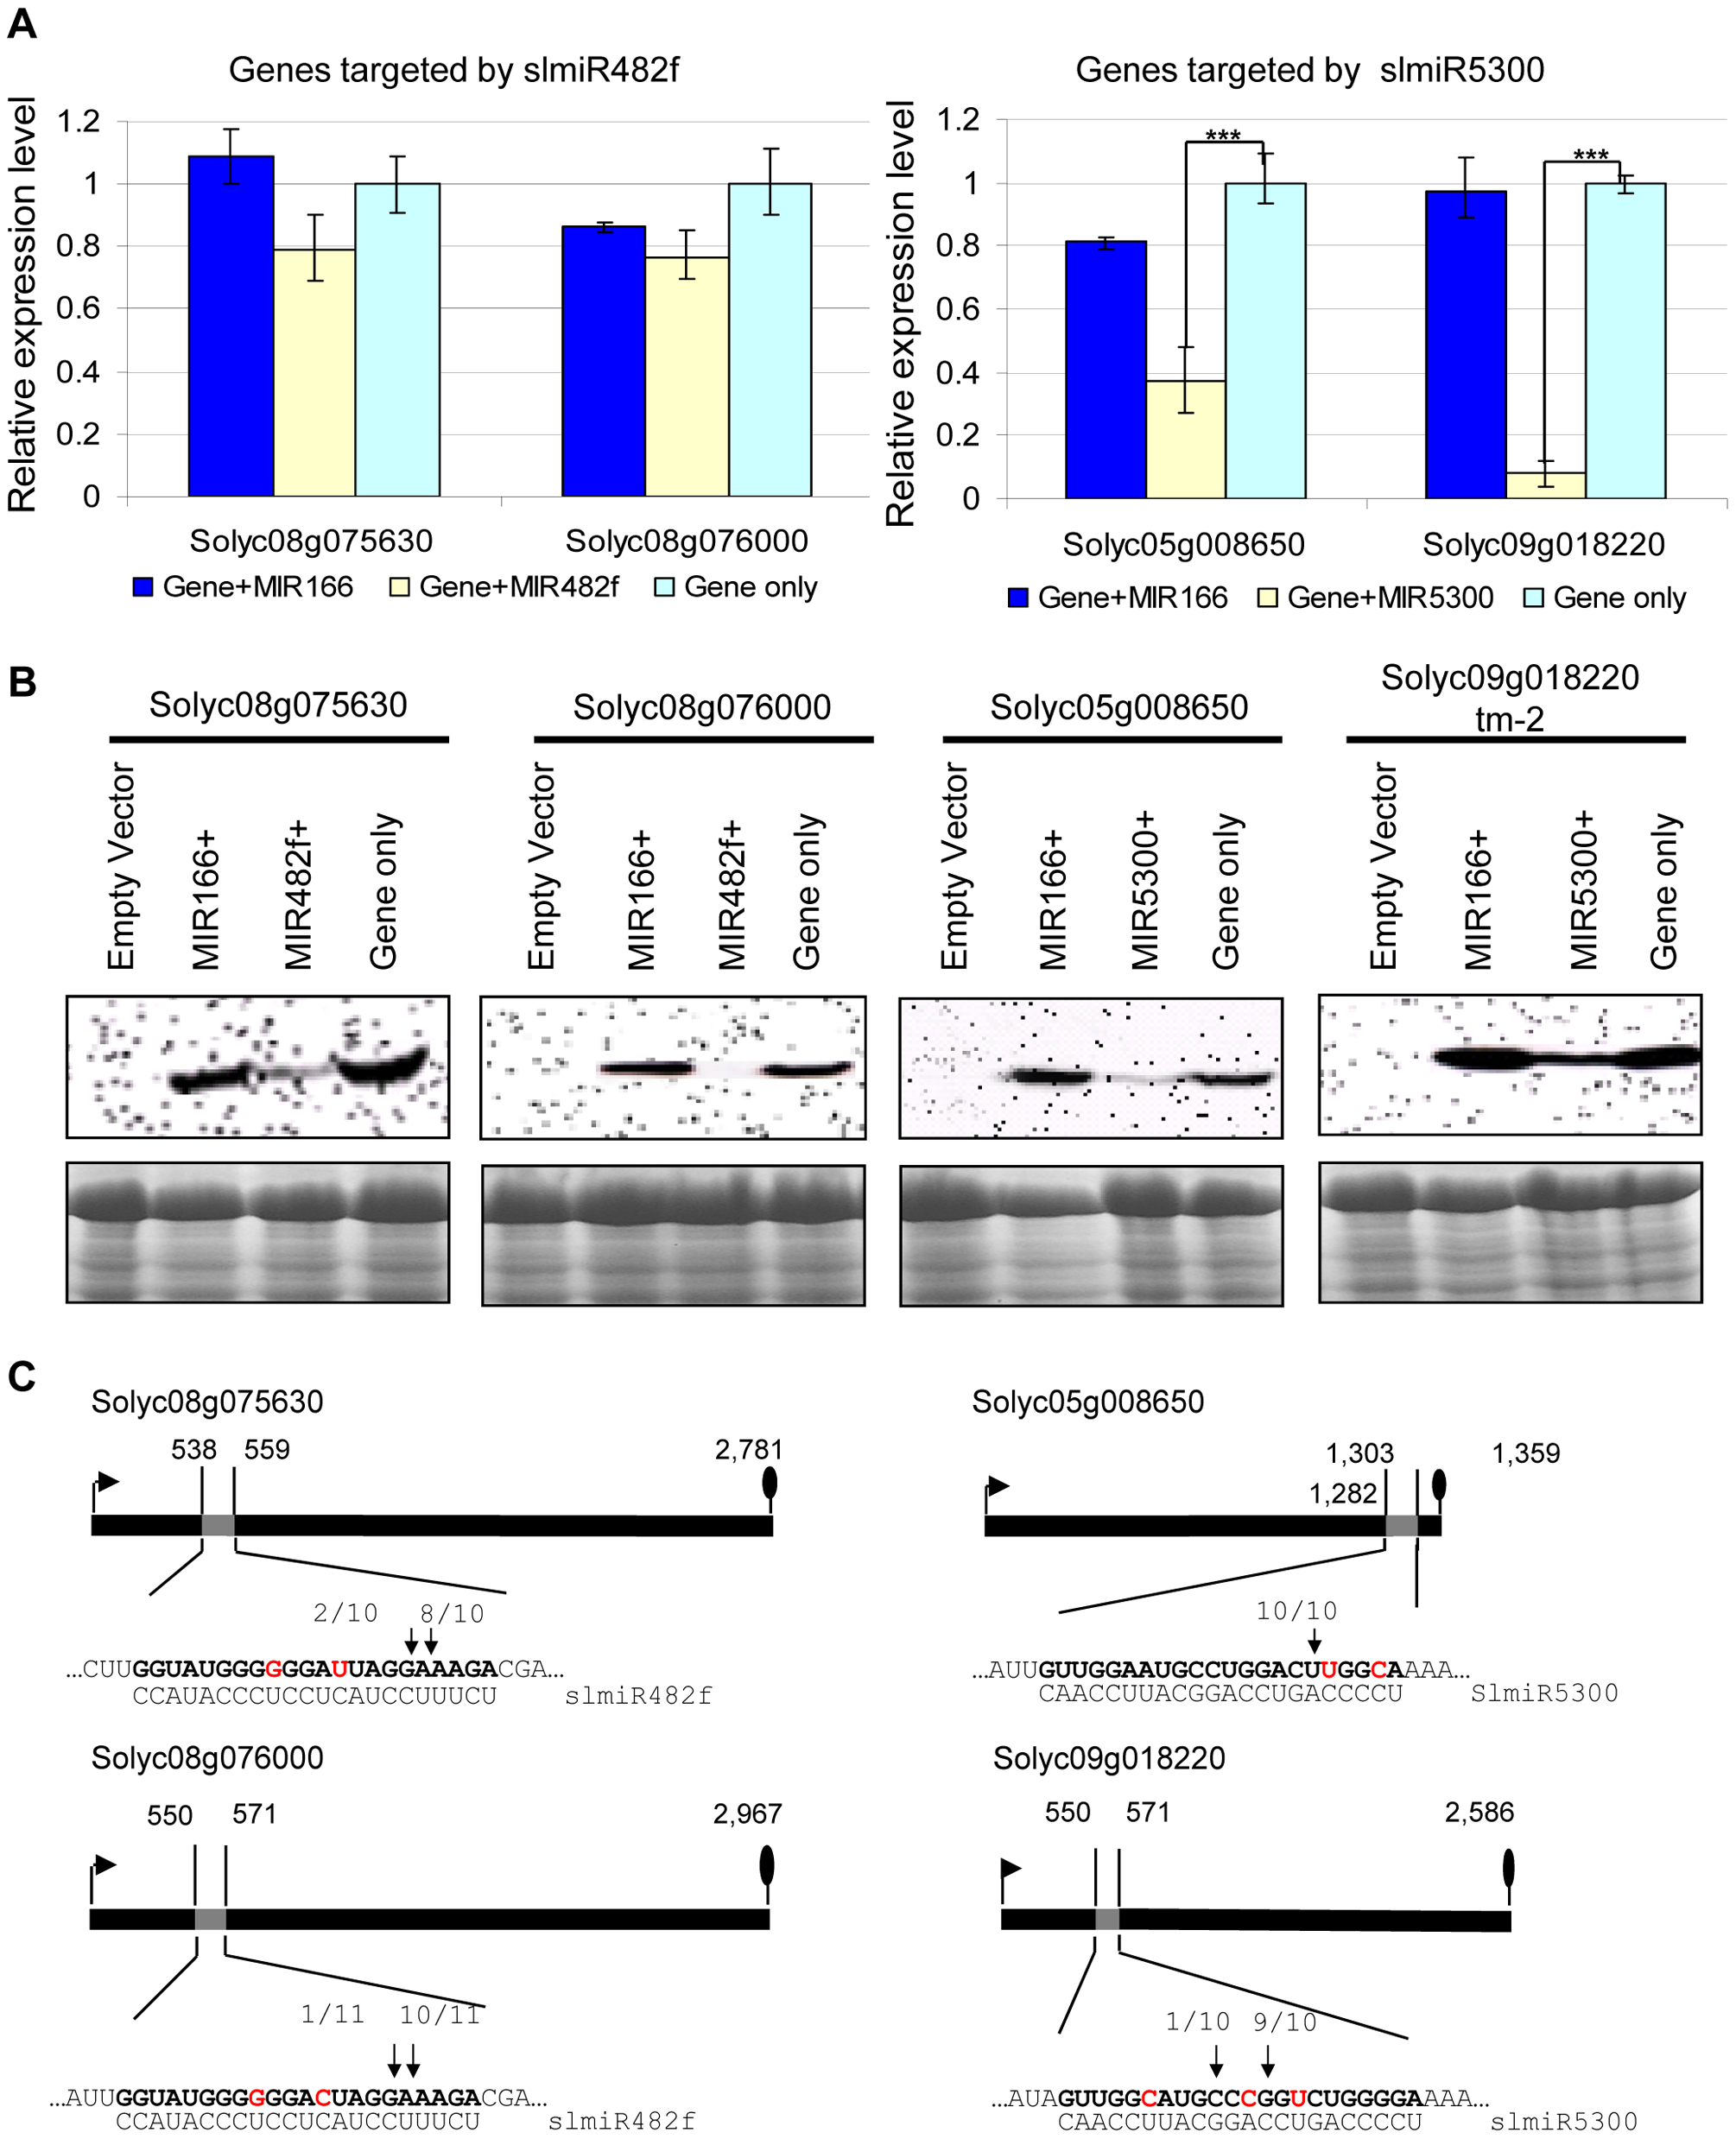 Co-expression of slmiRNAs and predicted targets in <i>Nicotiana benthamiana</i> leaves.